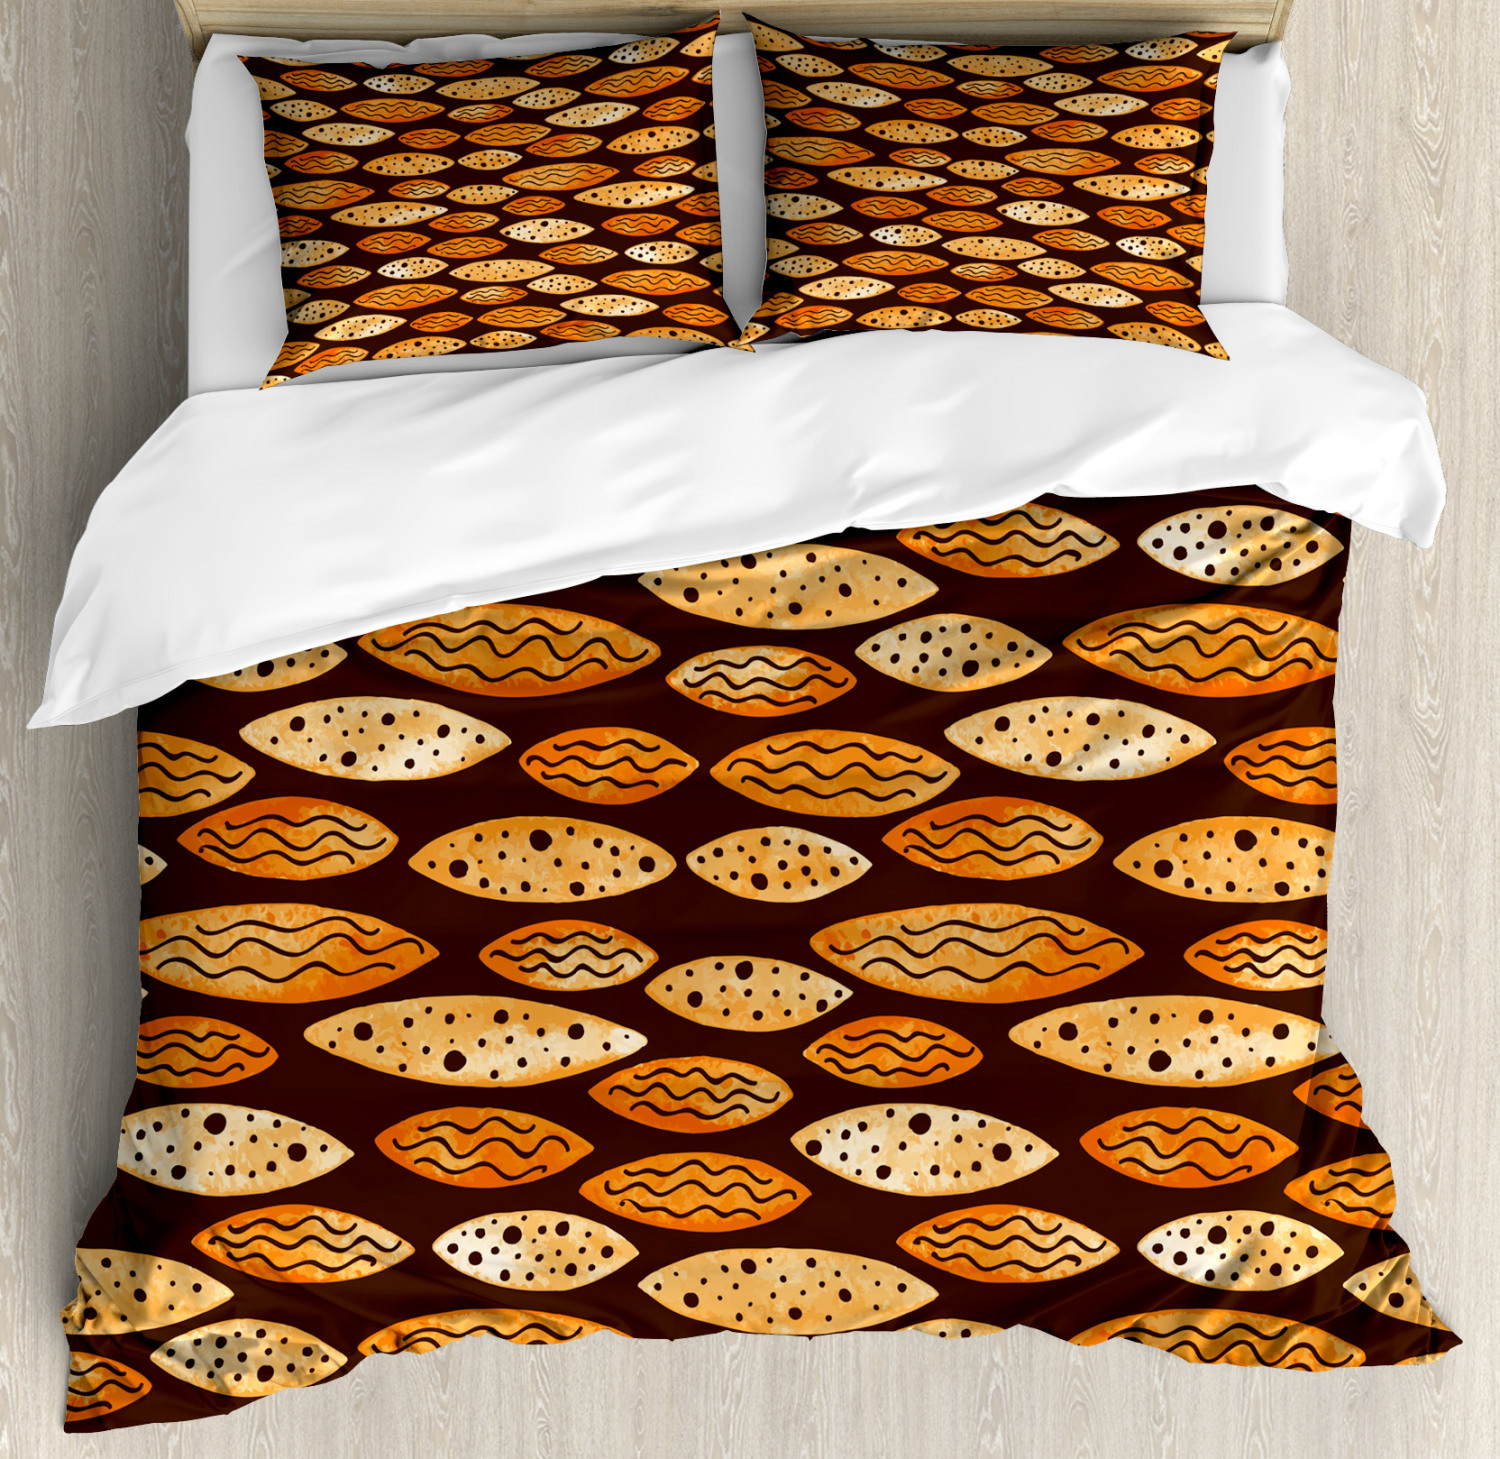 Abstract Duvet Cover Set with Pillow Shams Spots Waves Elliptic Print